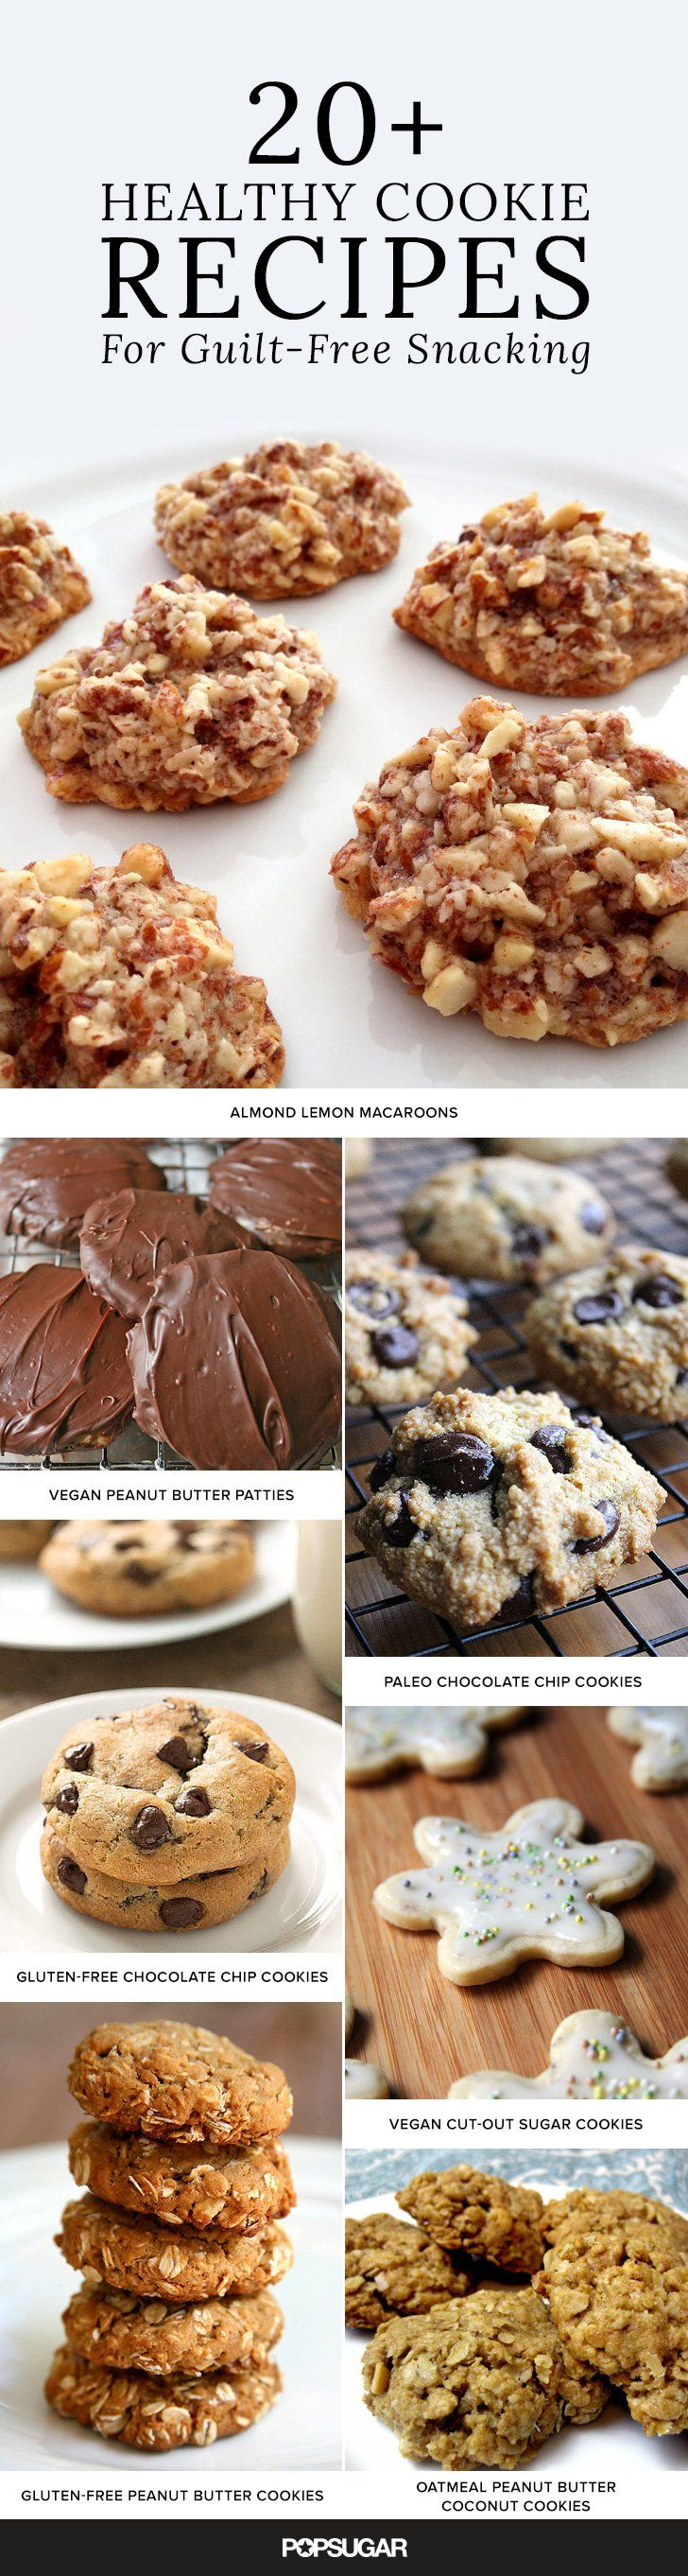 Don't Stop at Just One! 22 Healthy Cookie Recipes